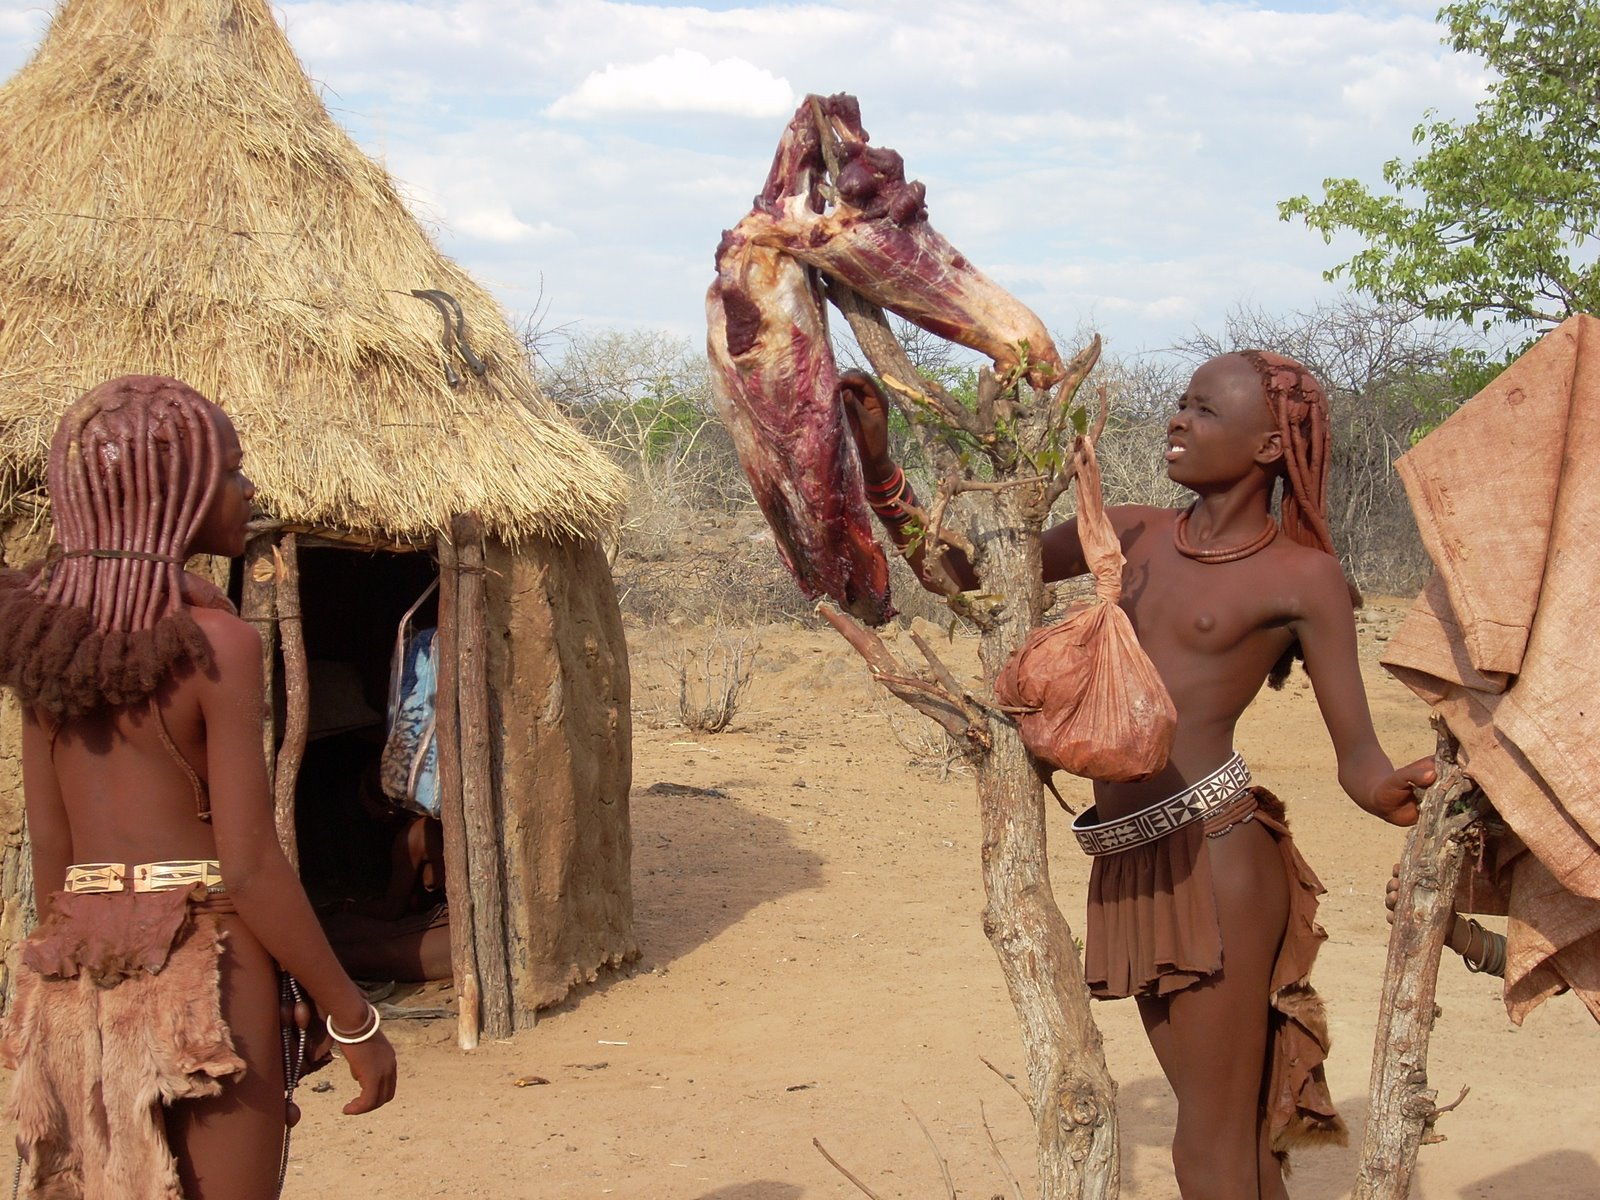 Women of the Himba tribe